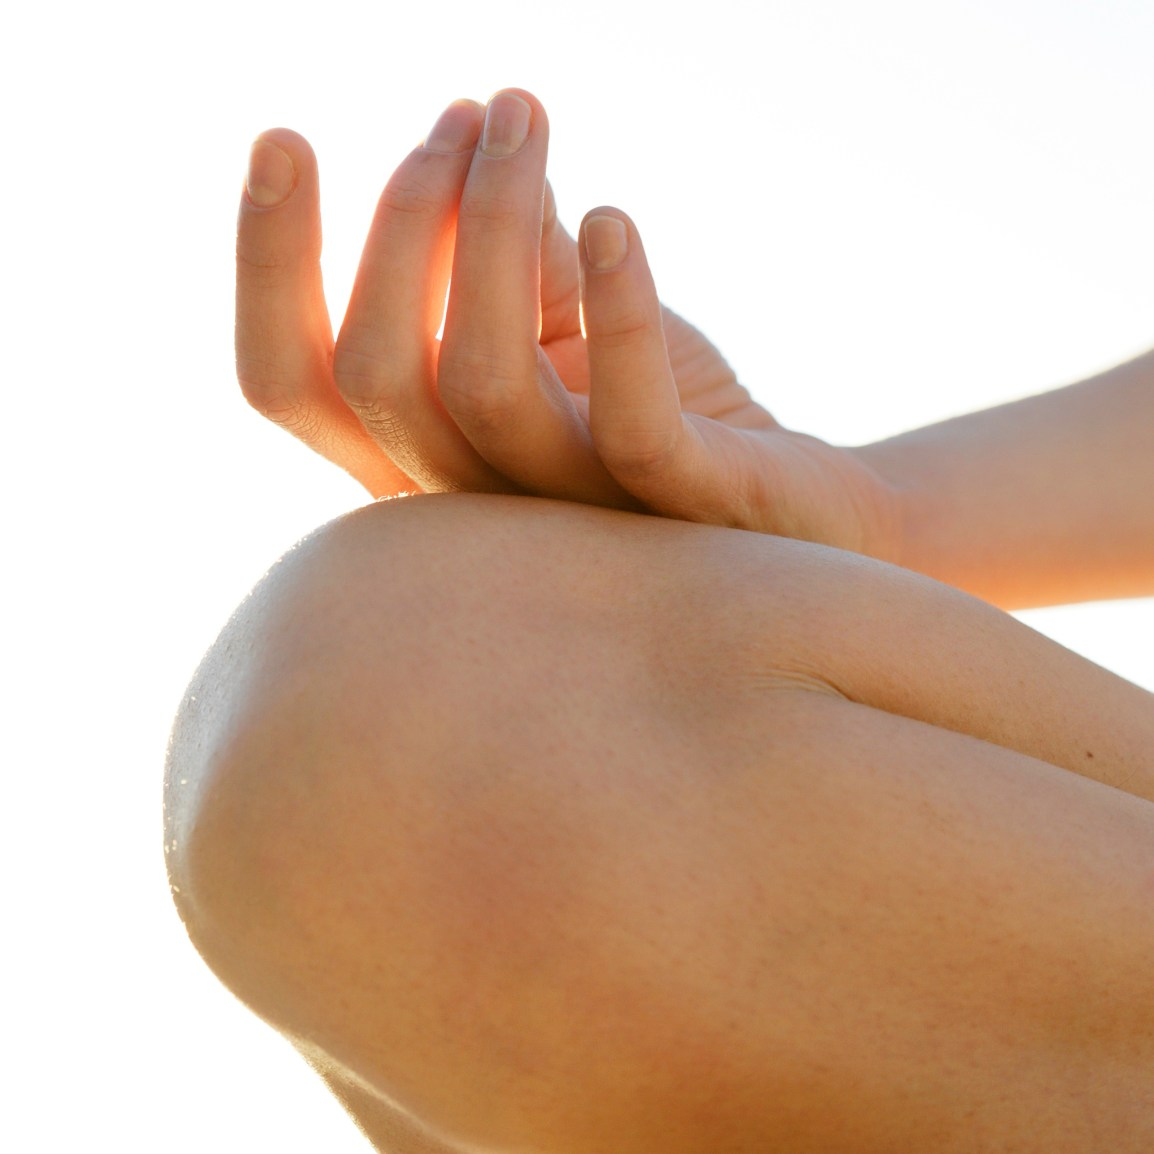 Reduce stress and its impacts - Osteopathy - The Tilsworth Clinic - stress-related pain management